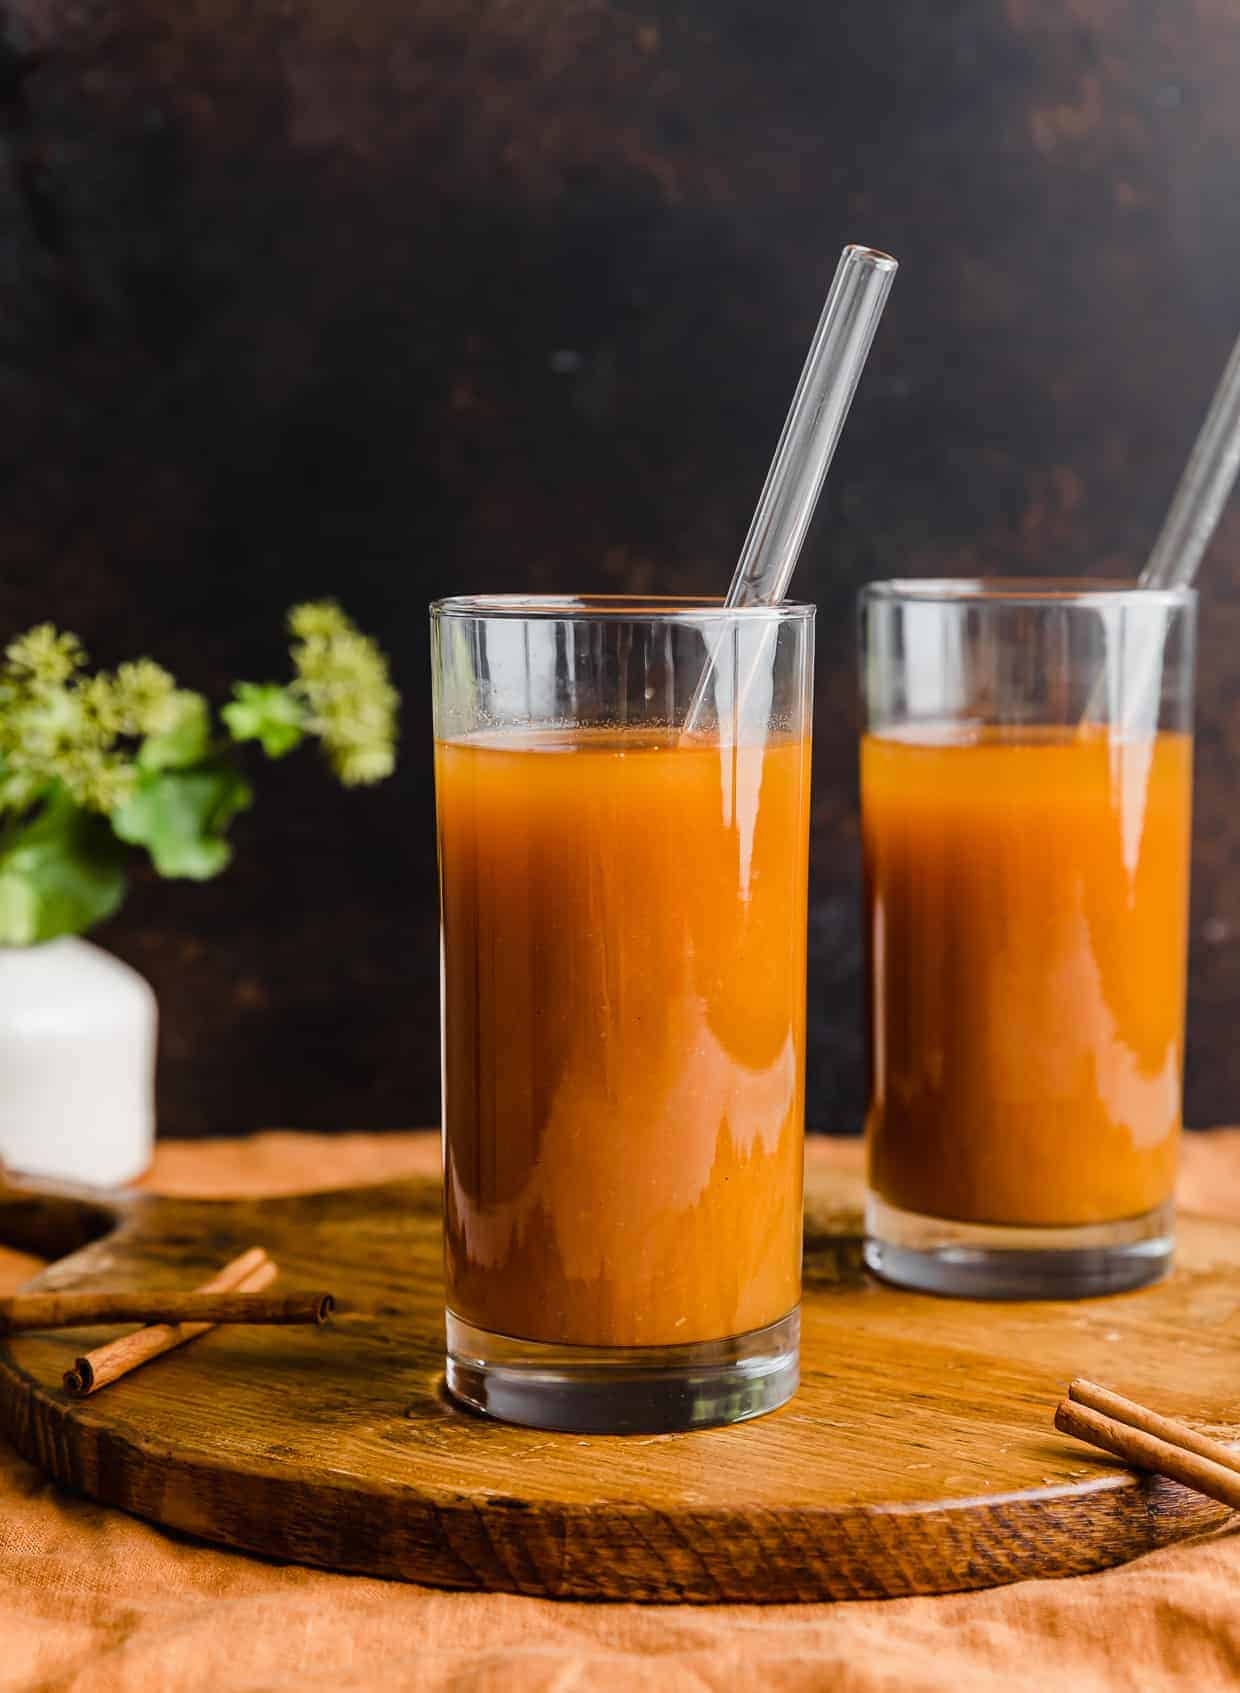 Two glasses with orange pumpkin juice in them against a brown background.